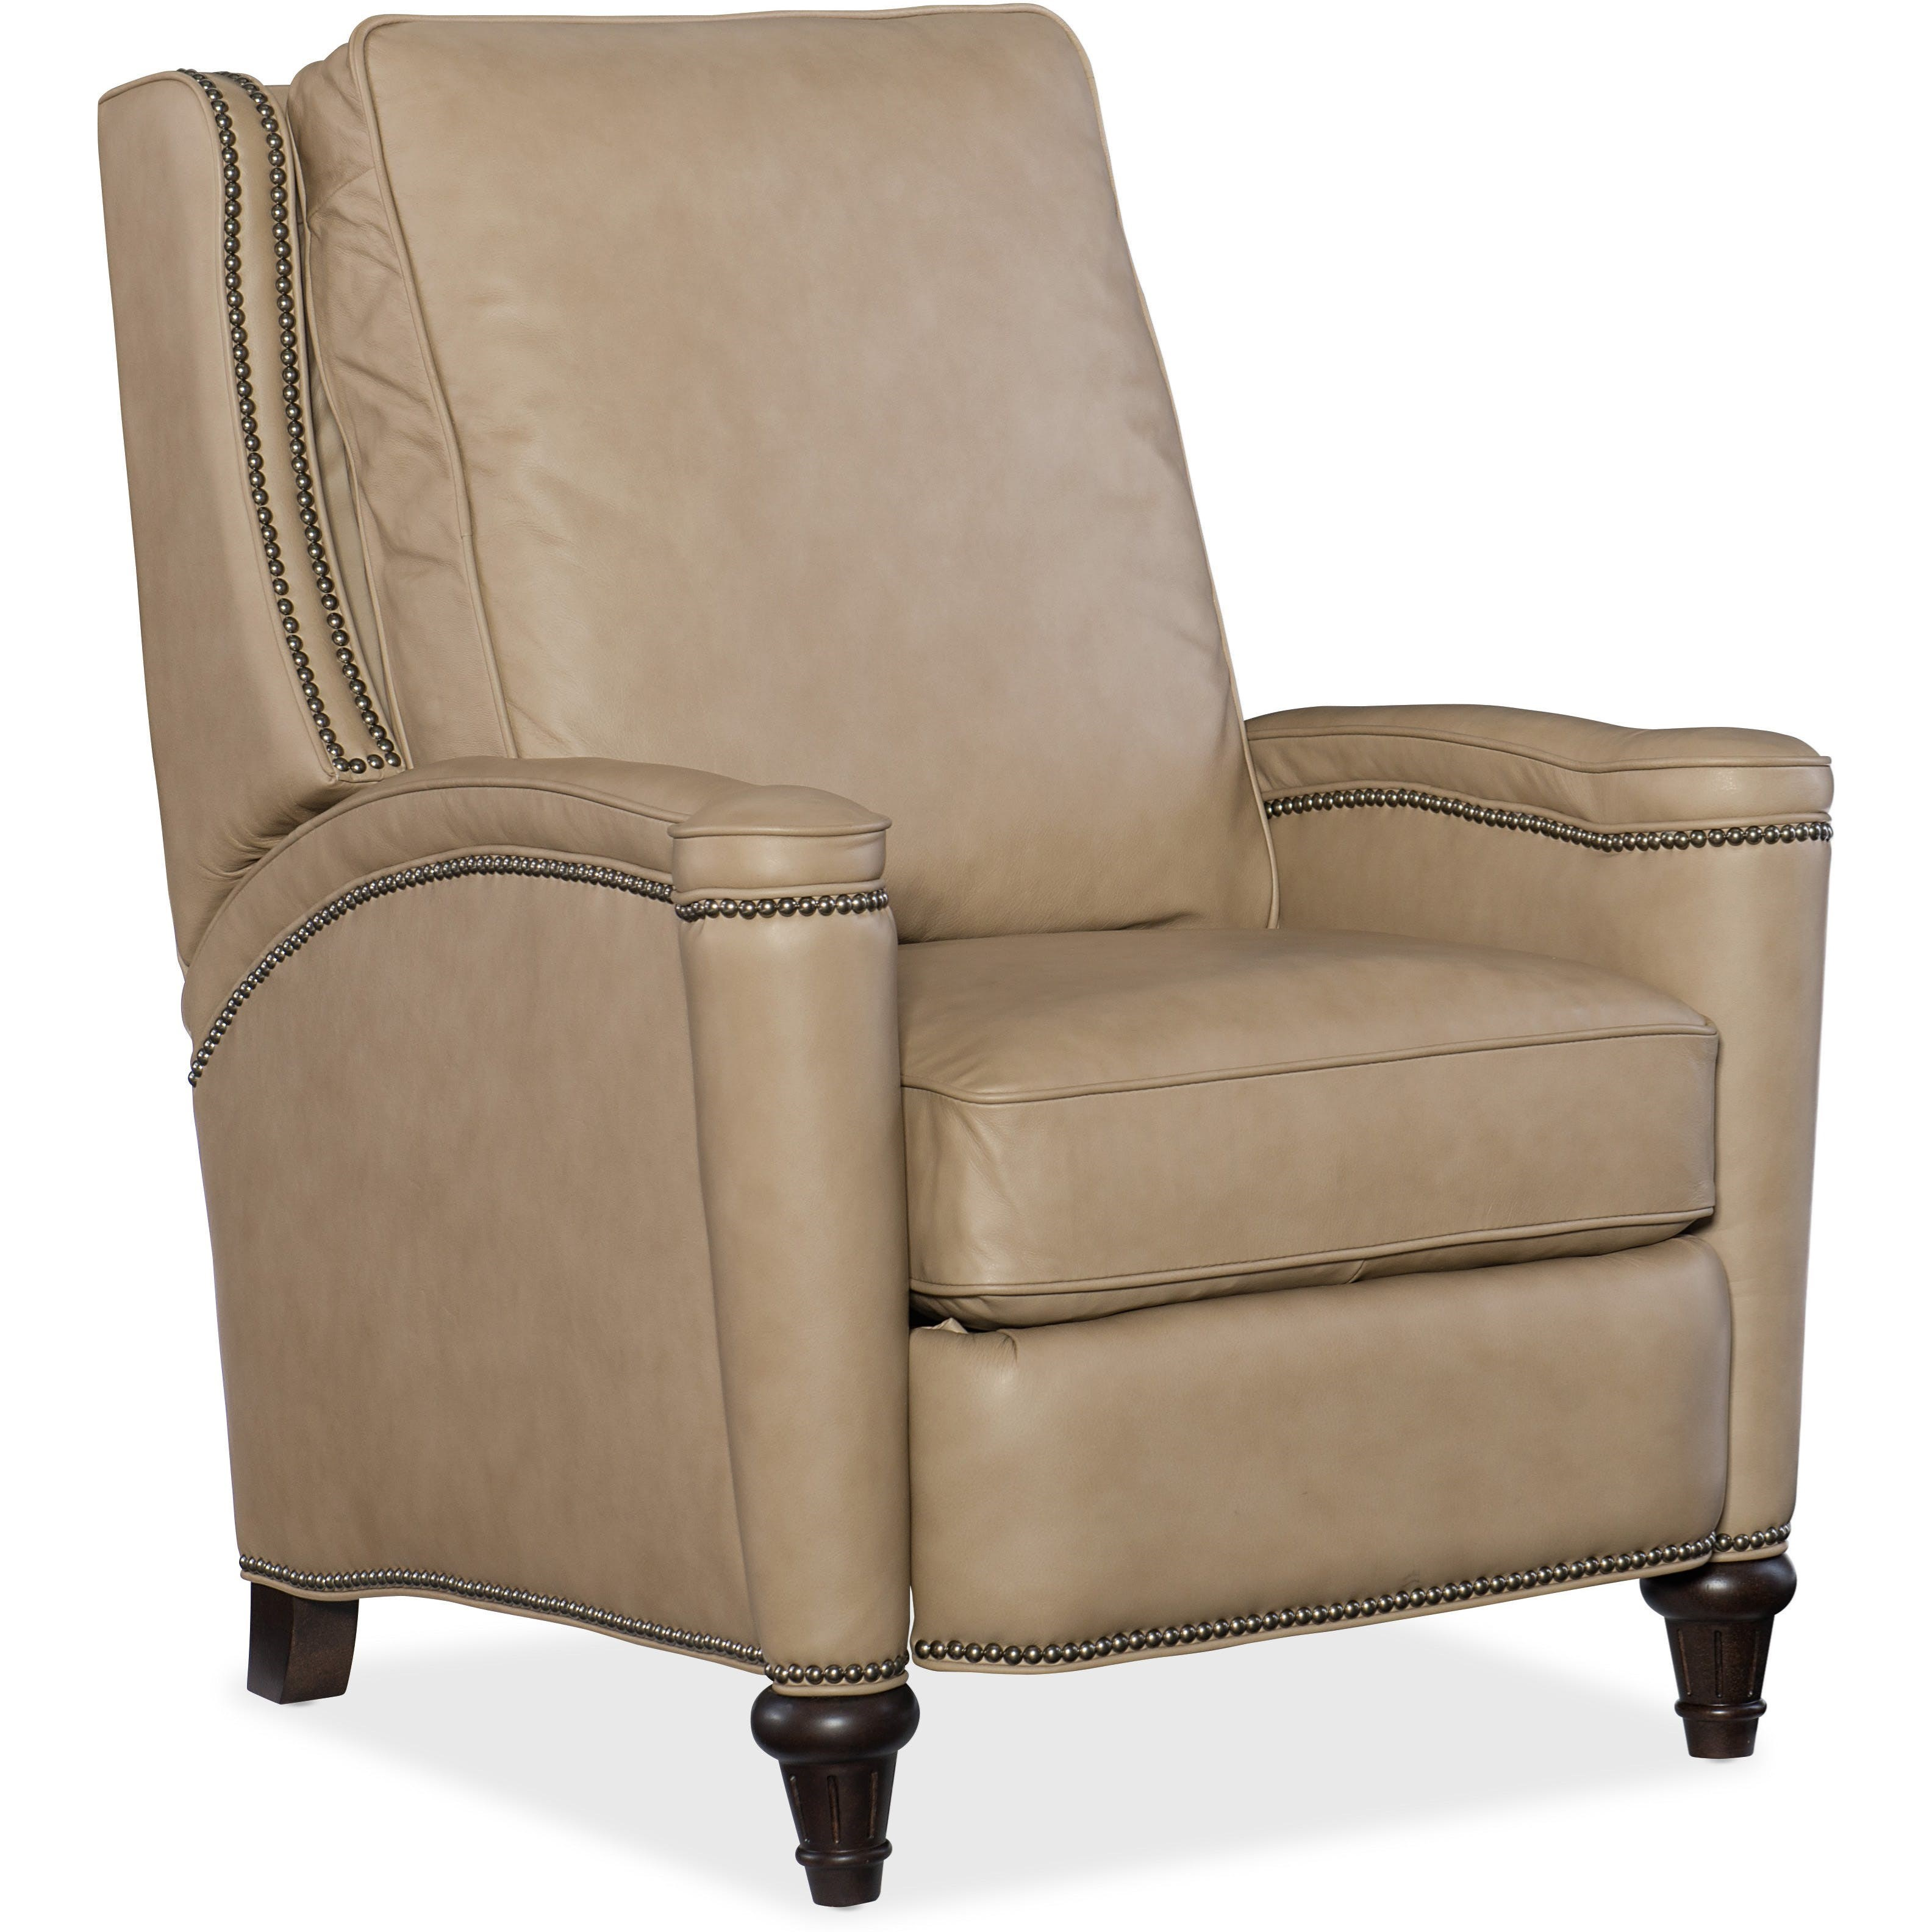 Reclining Chairs Rylea Recliner by Hooker Furniture at Baer's Furniture